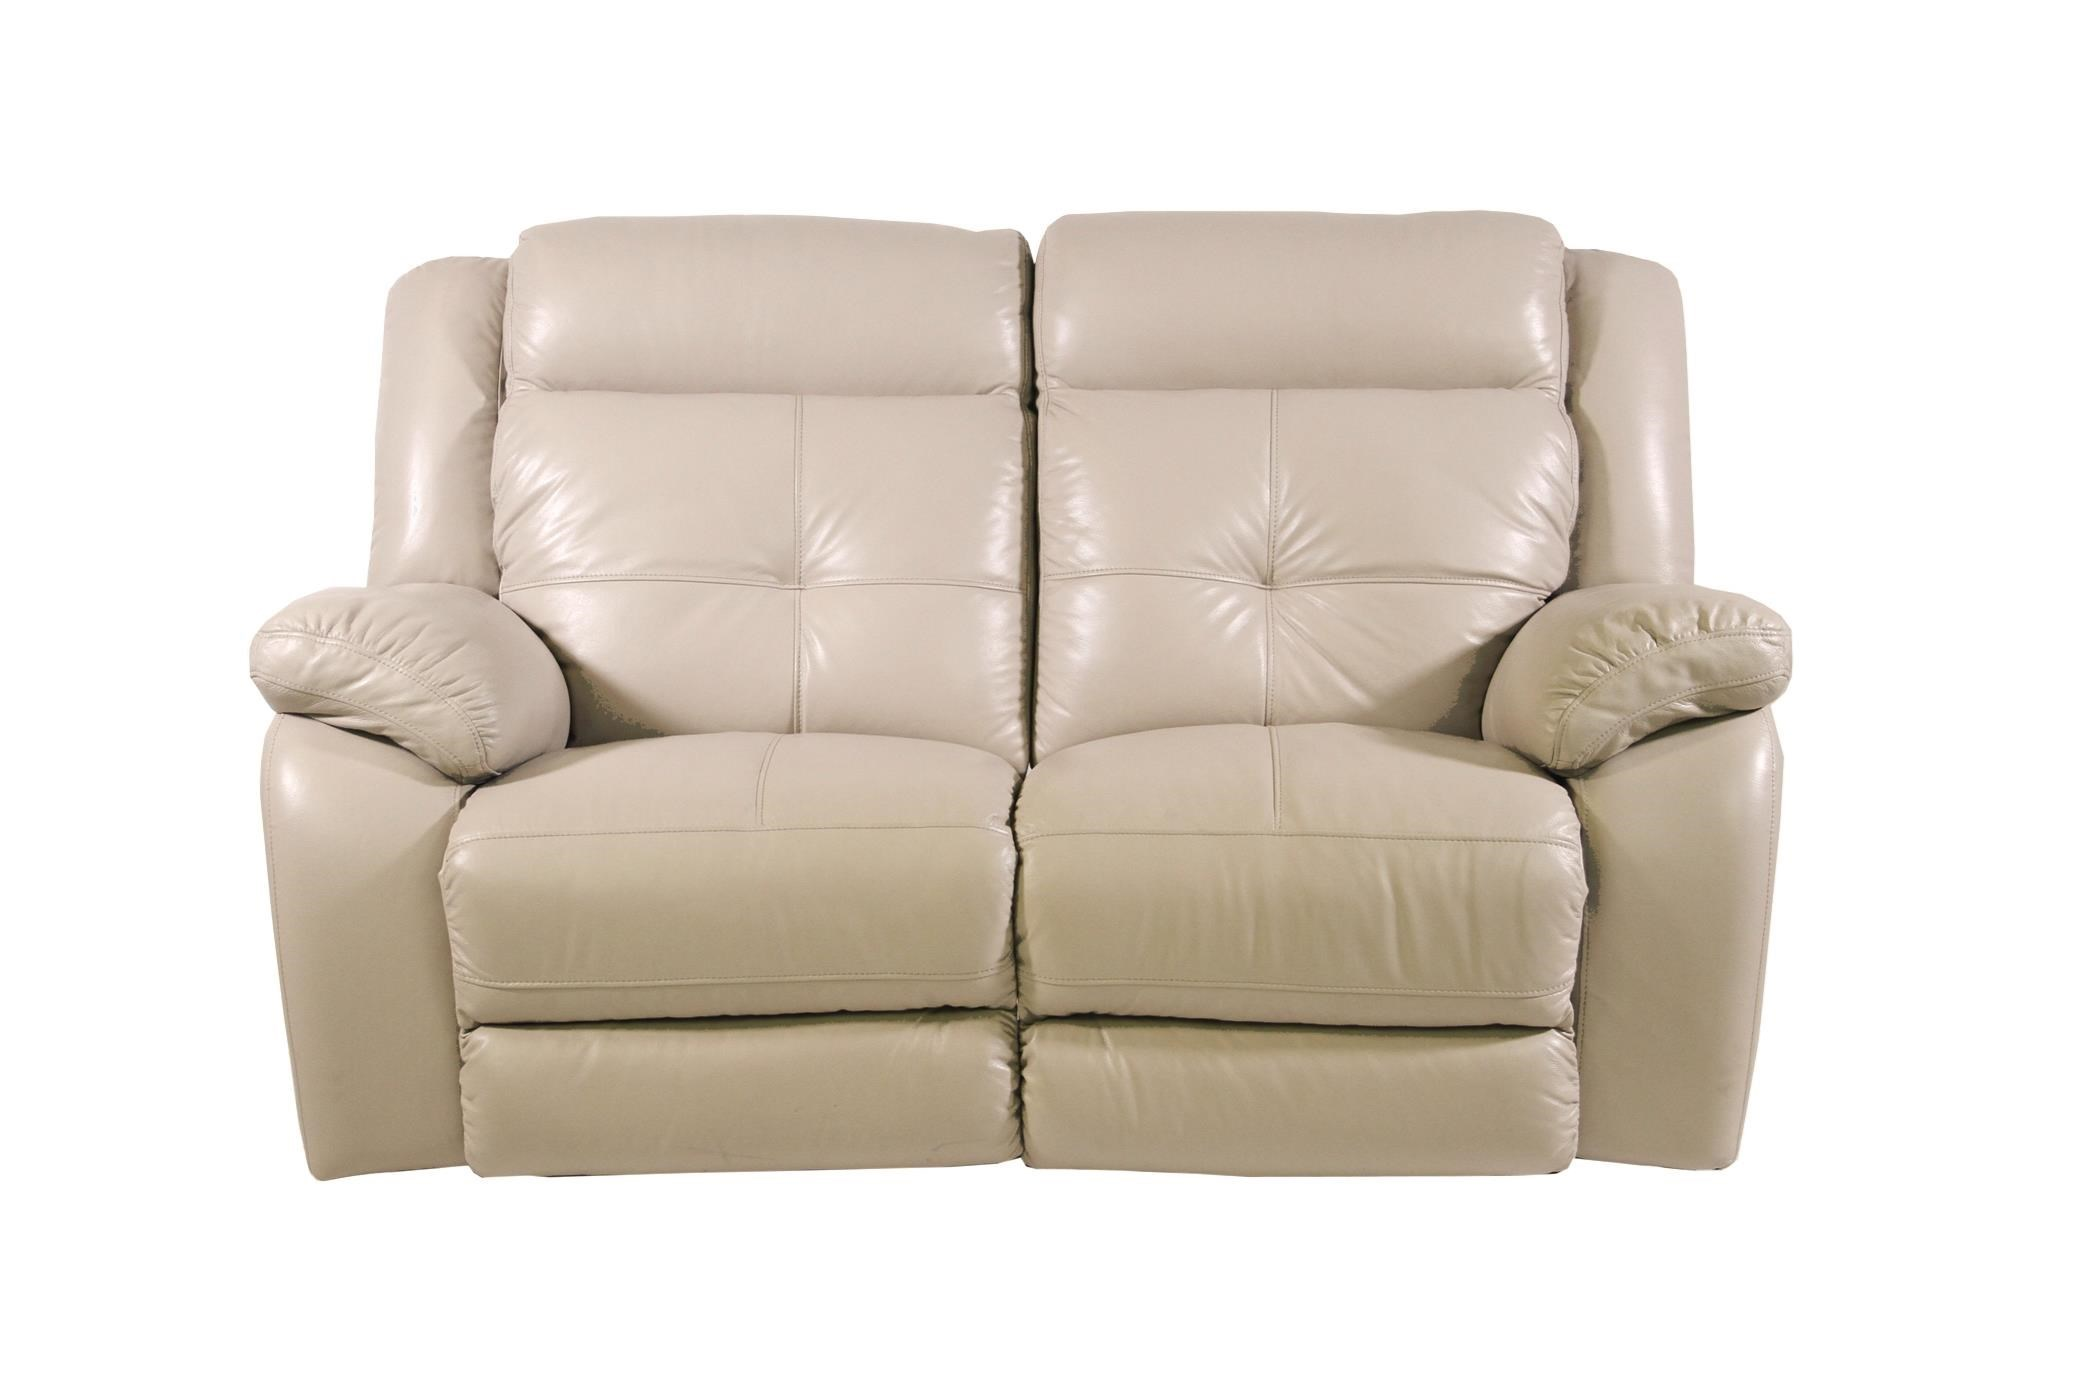 futura leather pebble power reclining loveseat homeworld furniture reclining love seats